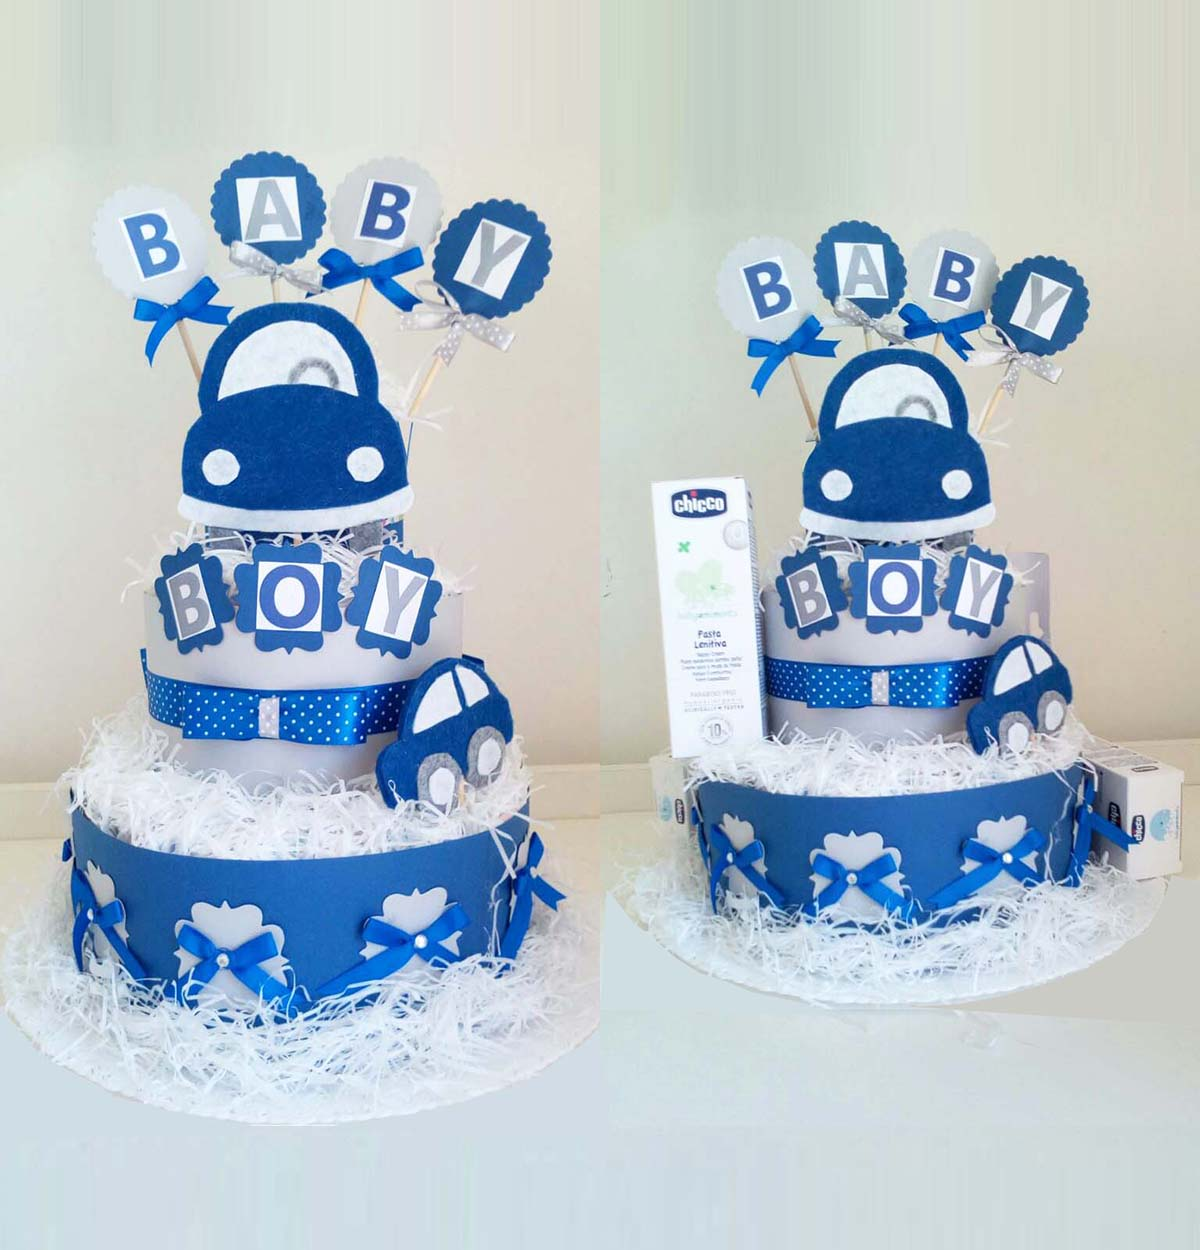 Torta Baby Boy: tre piani di Pampers.